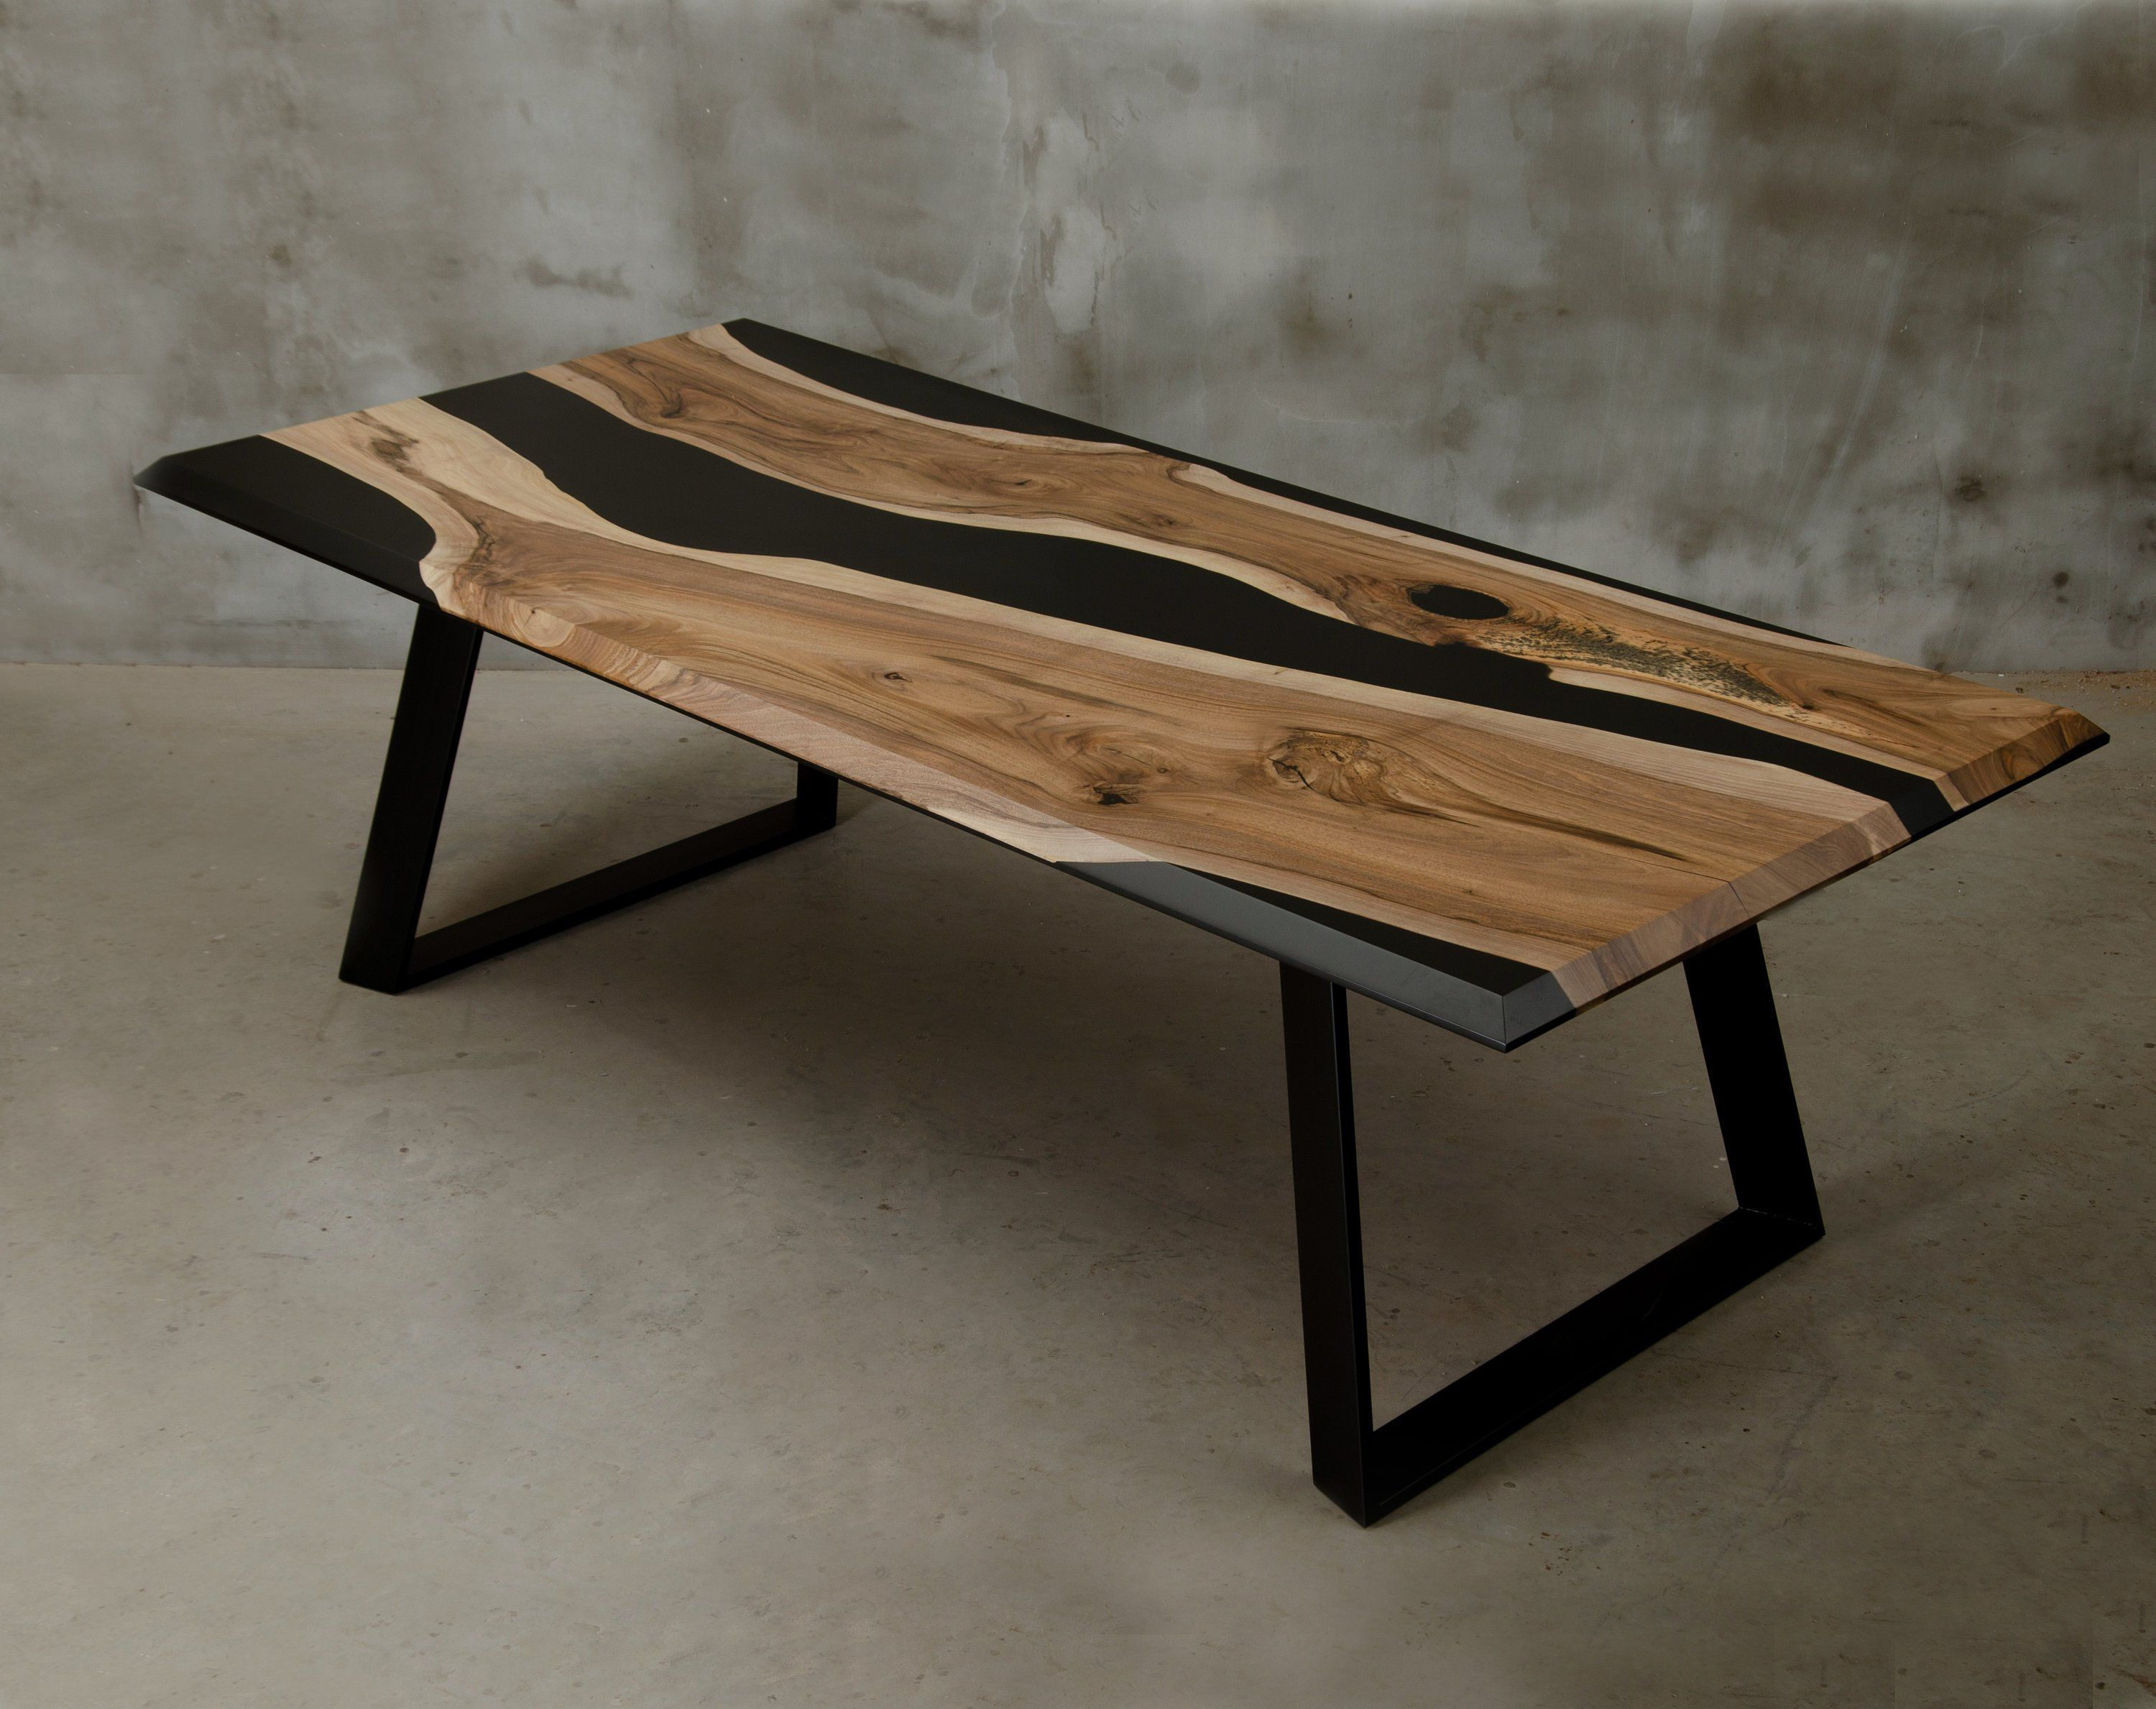 Custom Epoxy Table Made Of Walnut Wood And Black Resin Modern Live Edge Table Unique Resin Table In Industrial Style Conference Table Resin Table Live Edge Table Live Edge Coffee Table [ 2378 x 3000 Pixel ]